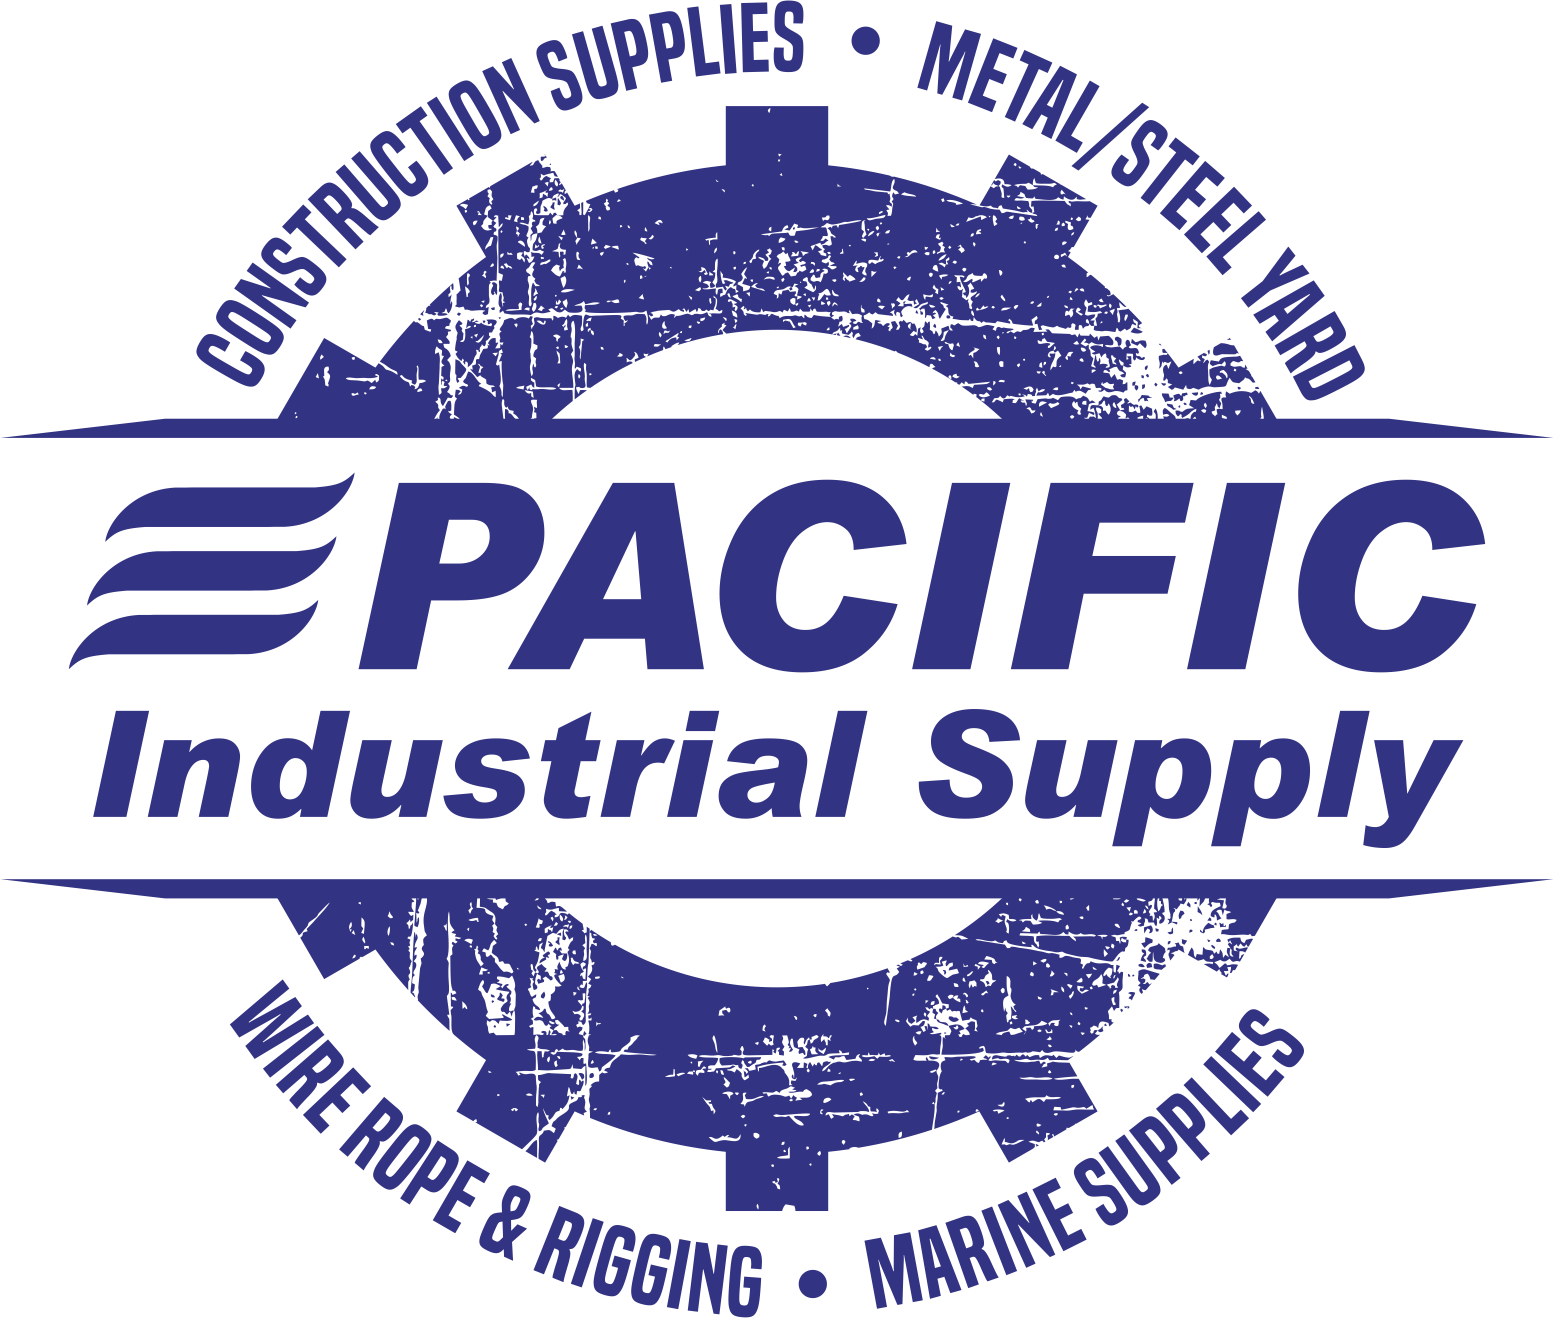 Updated logo for an industrial supply store